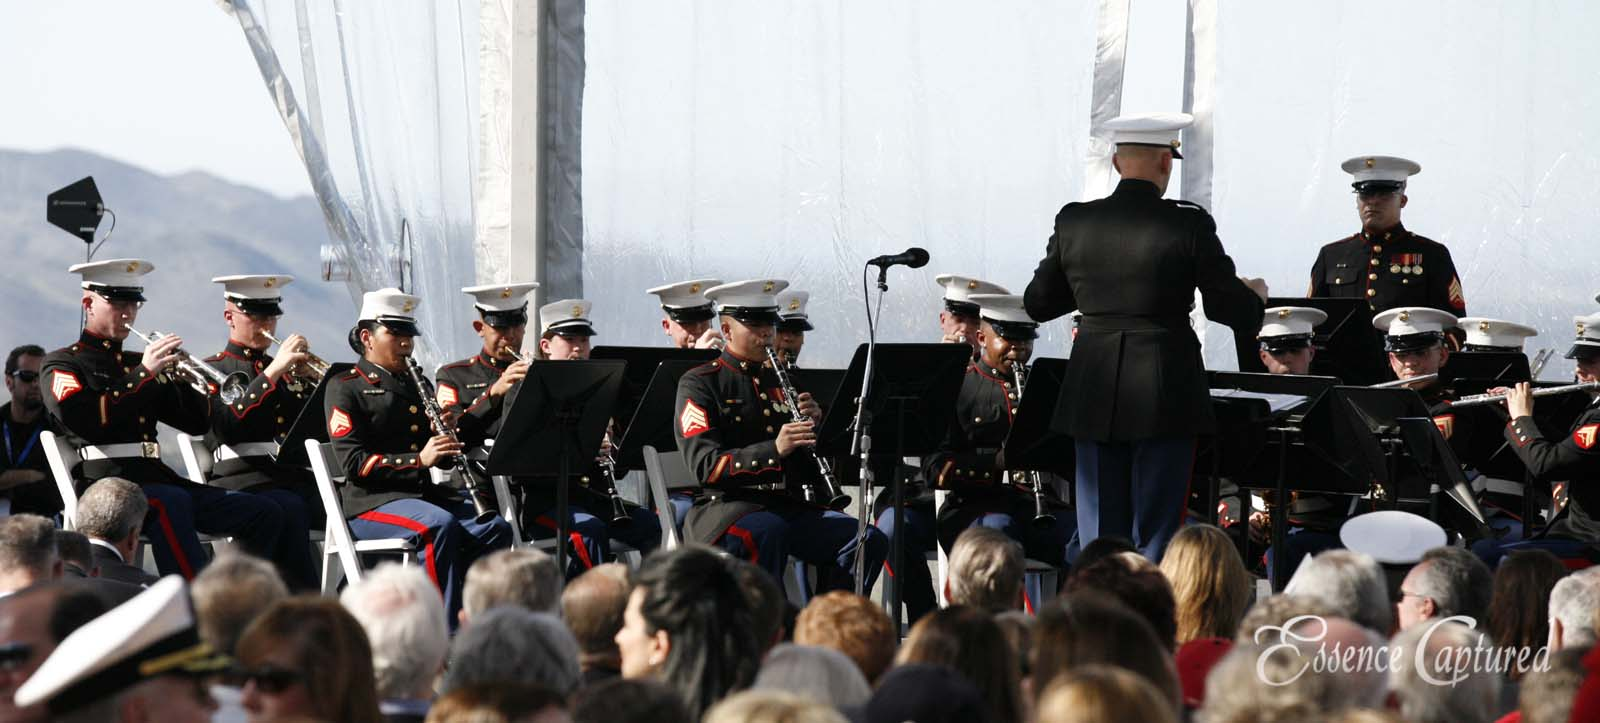 armed forces orchestra plays at event